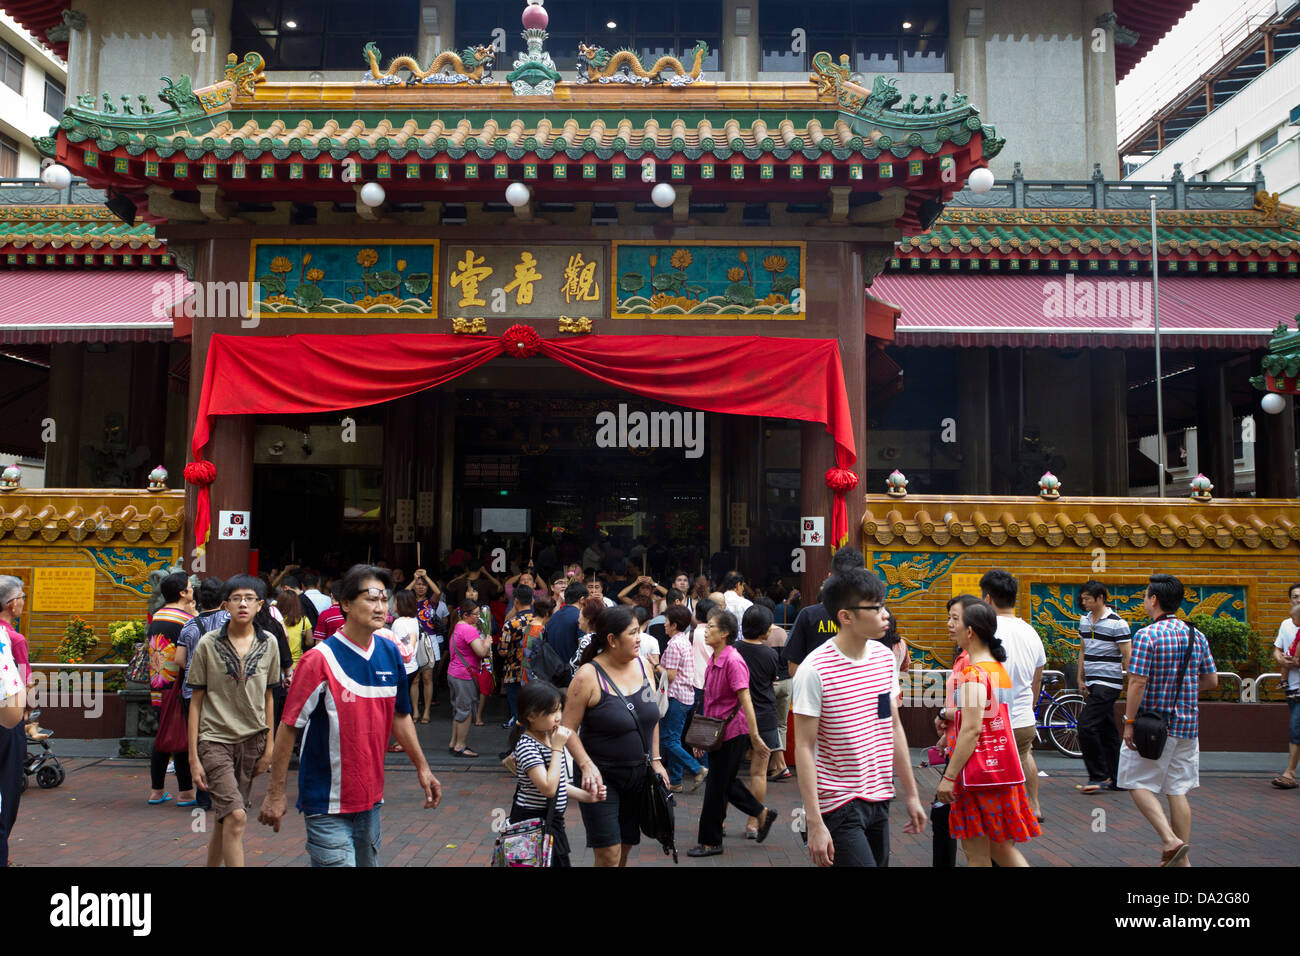 People standing and walking around outside Kwan Im Thong Hood Cho Temple, Bugis, Singapore - Stock Image